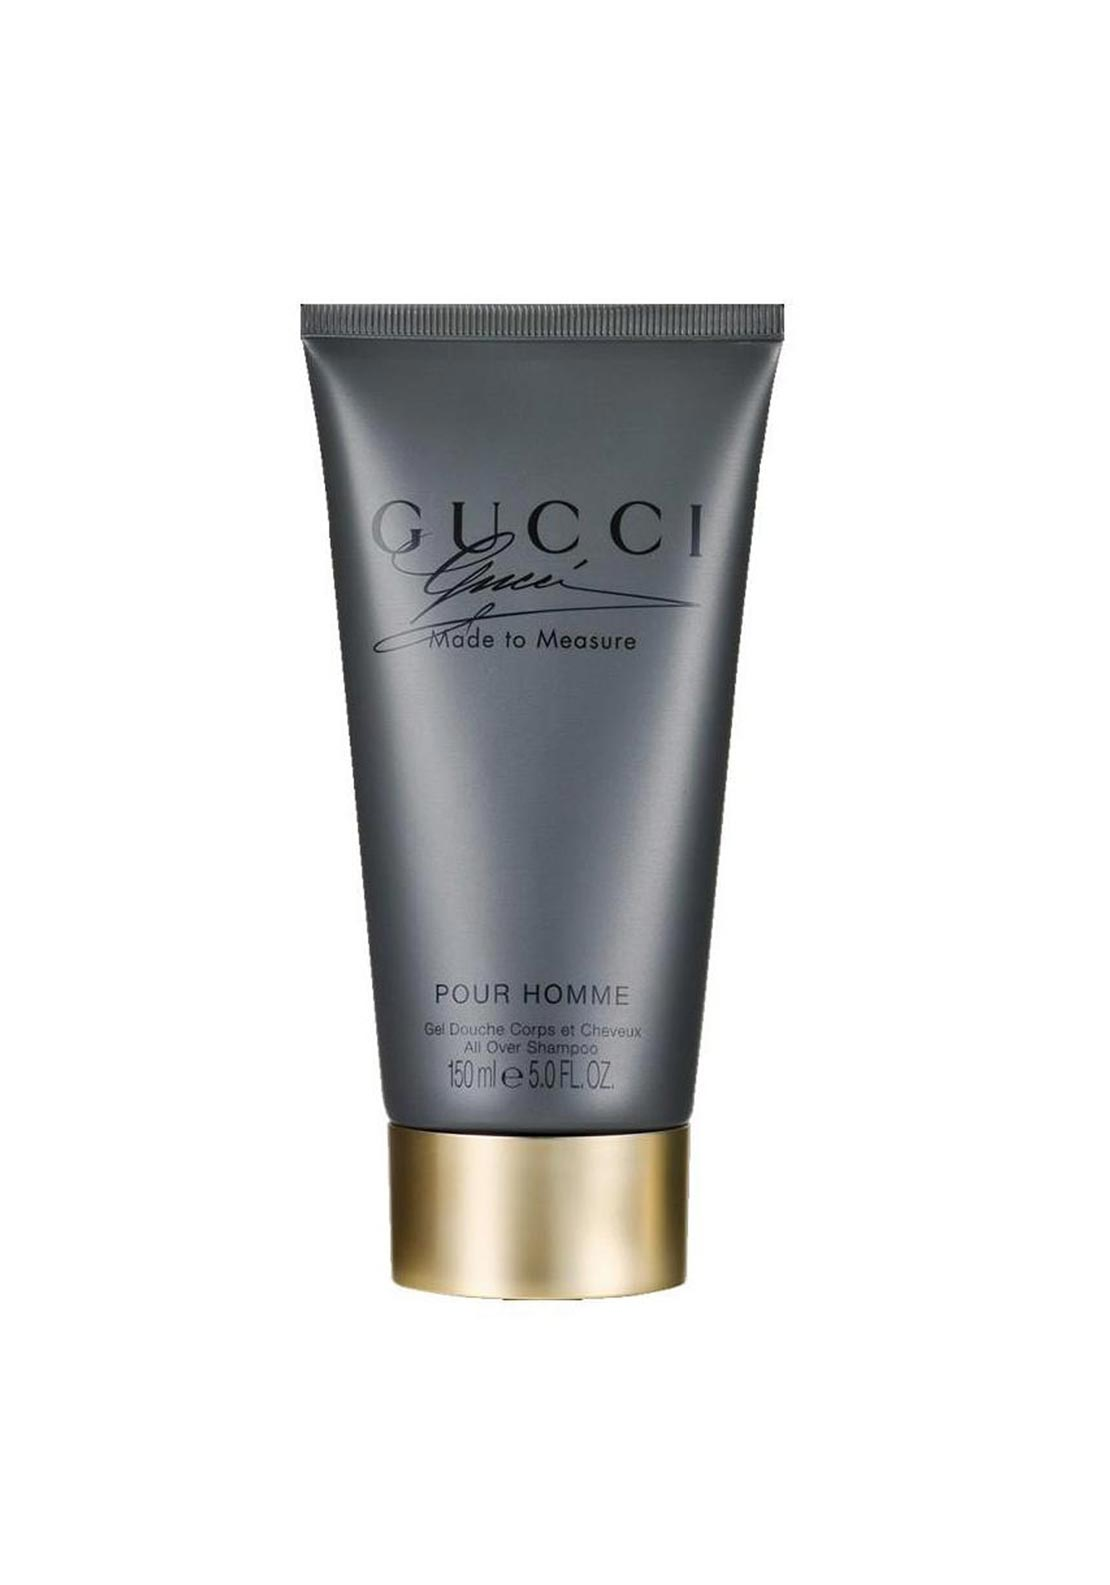 Gucci Guilty Pour Homme All over Shampoo, 150ml